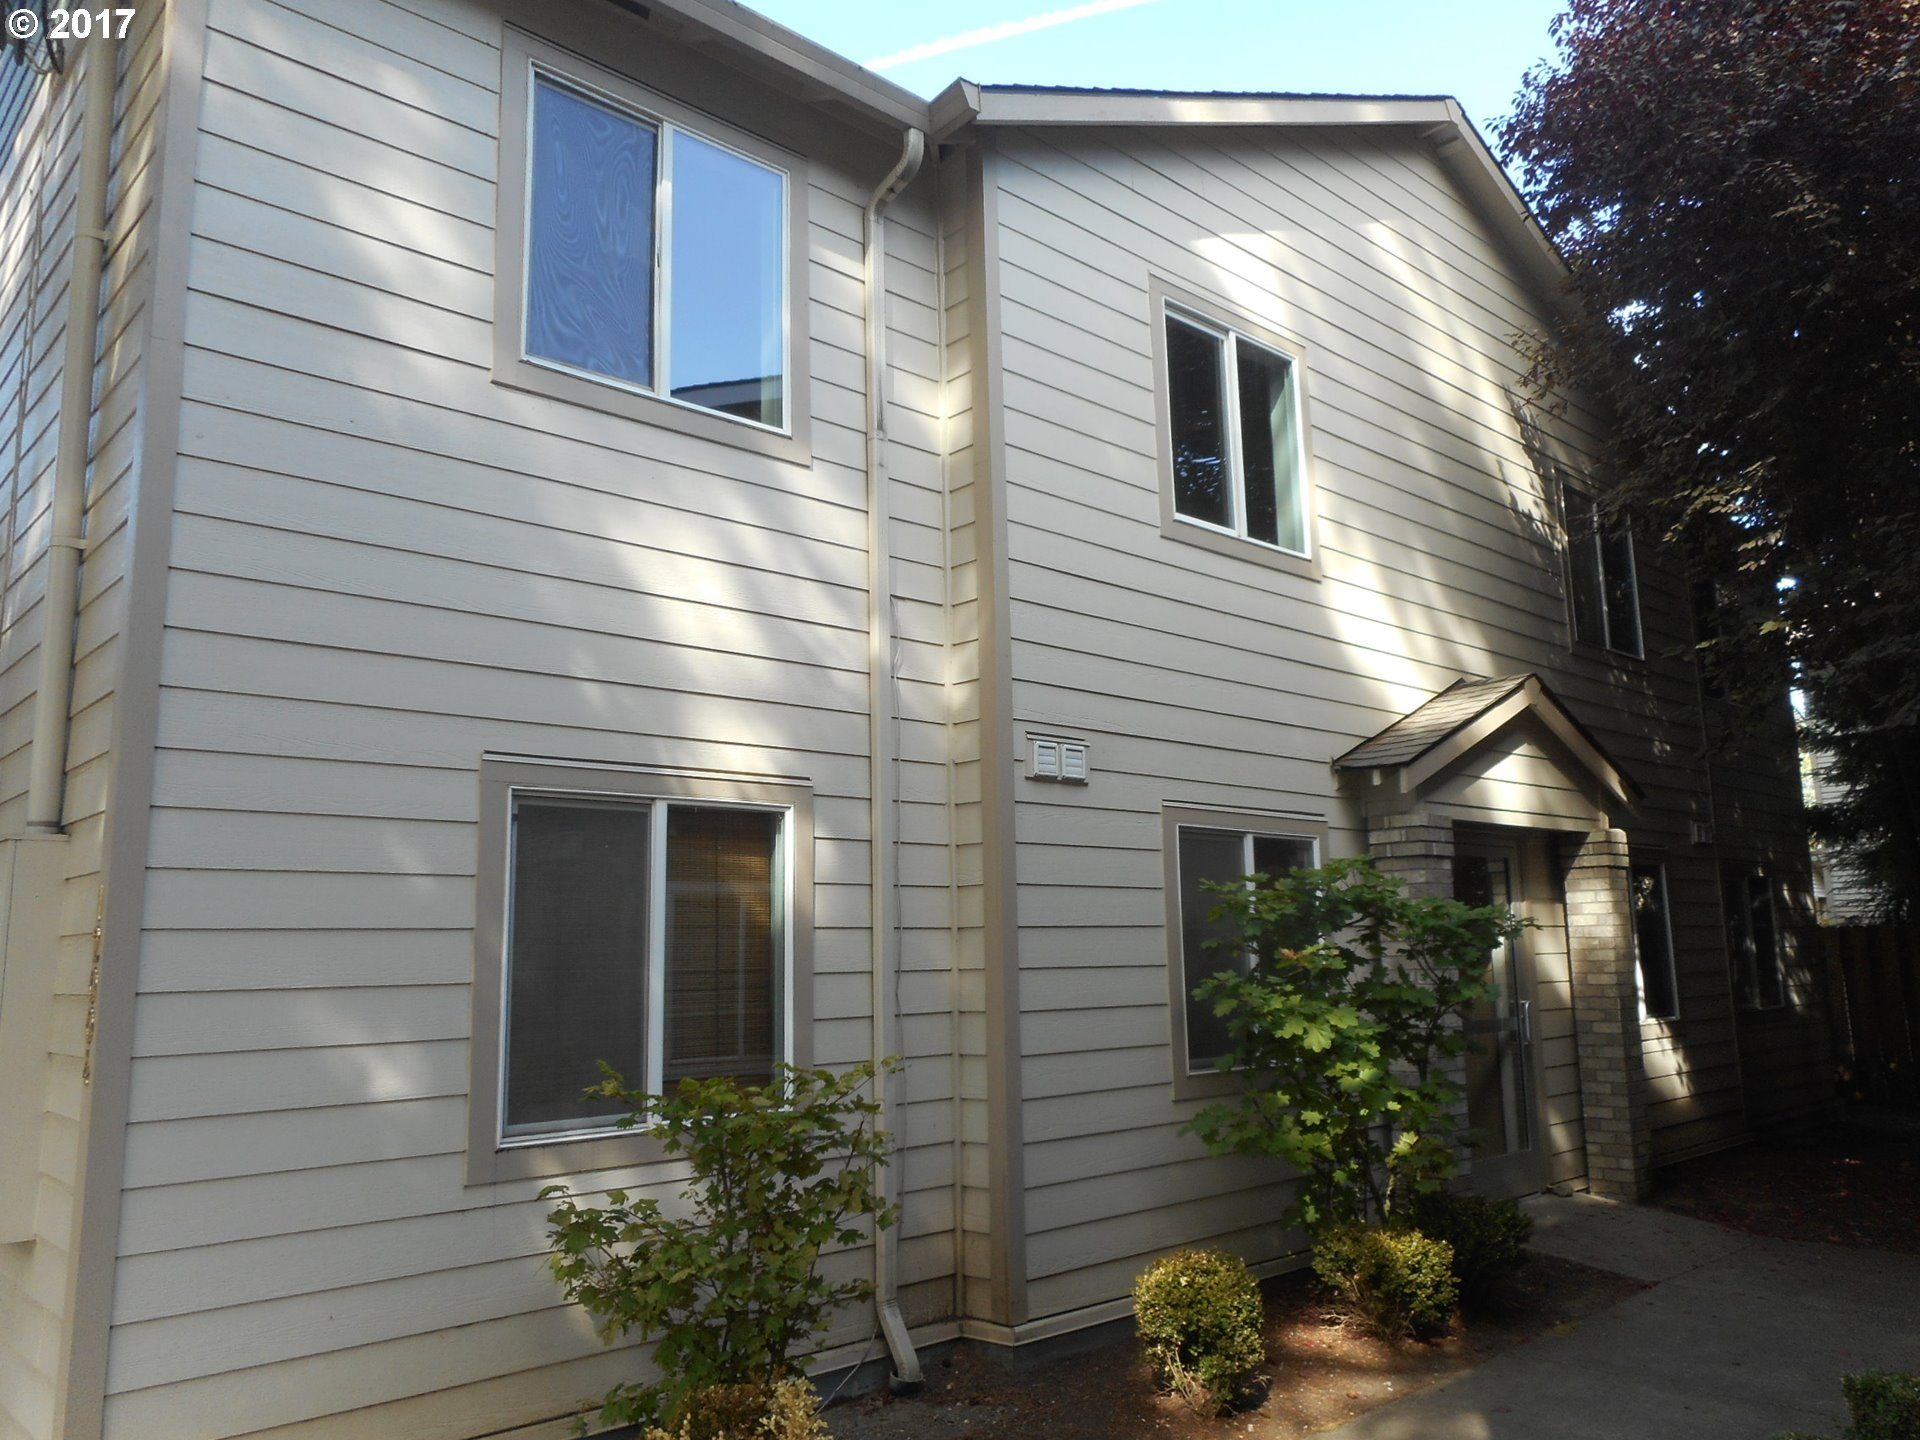 966 sq. ft 3 bedrooms 2 bathrooms  House ,Portland, OR